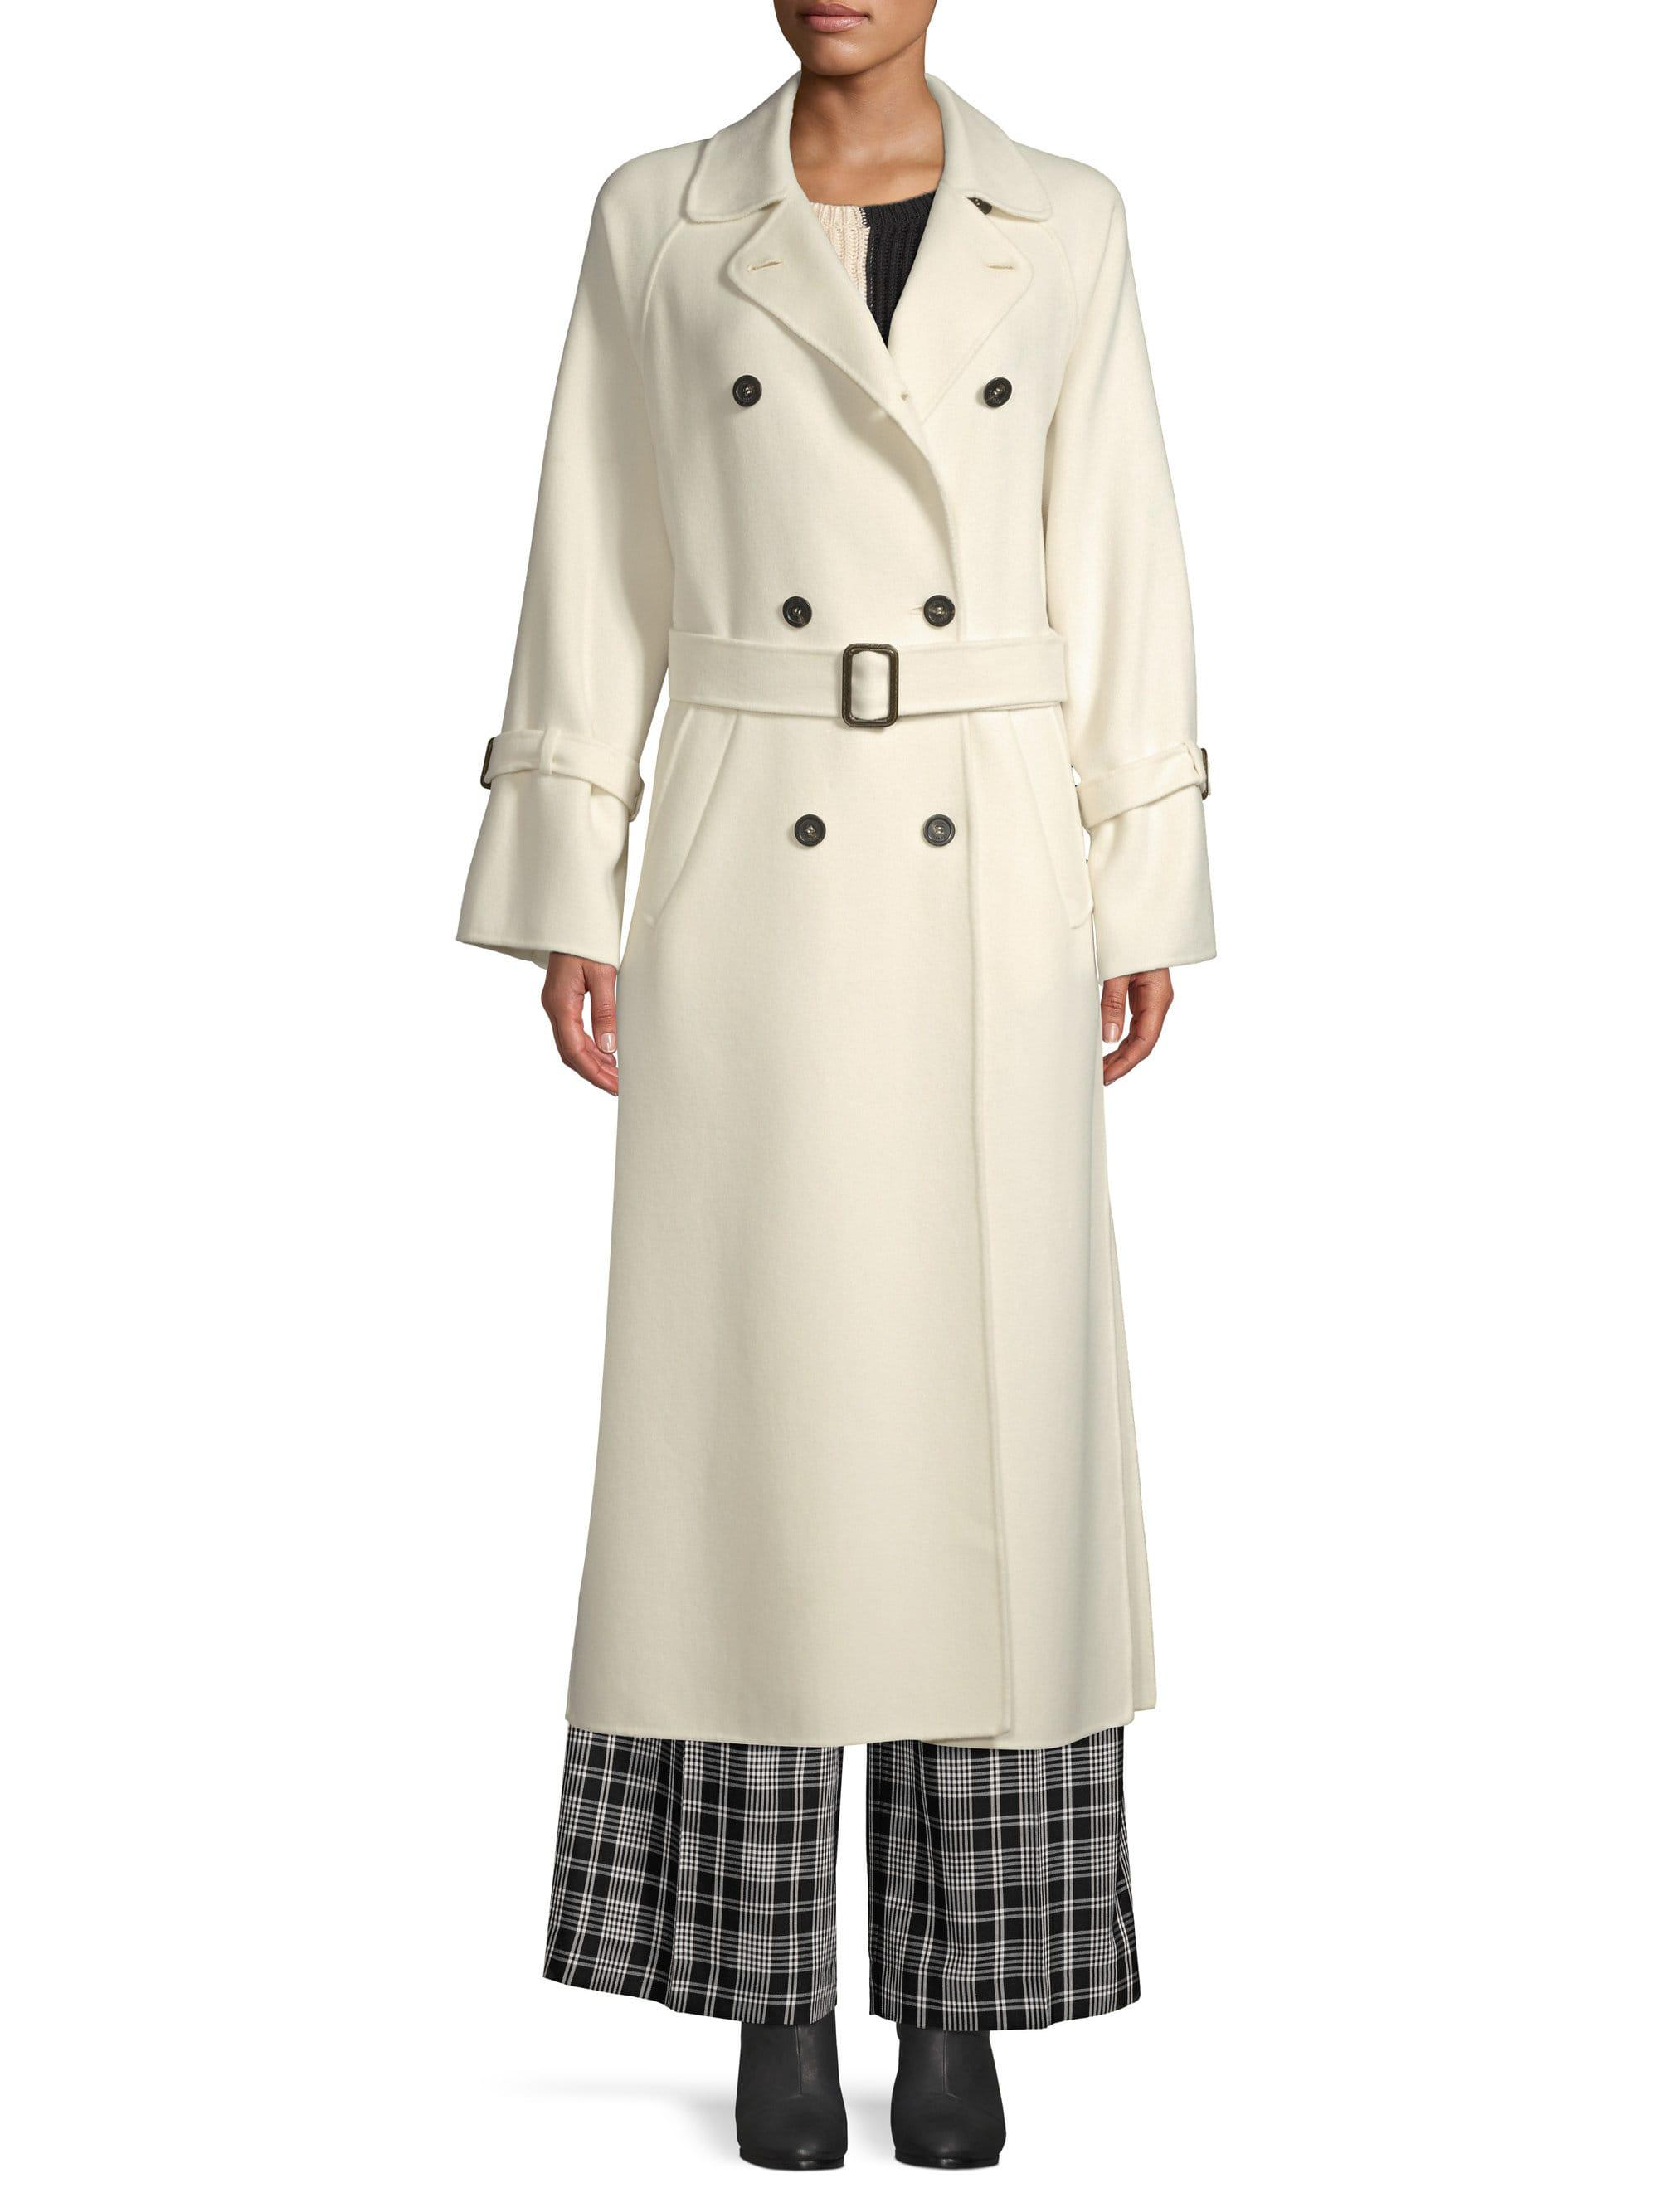 625eb31e5 Weekend by Maxmara - White Oidio Doppio Wool Trench - Lyst